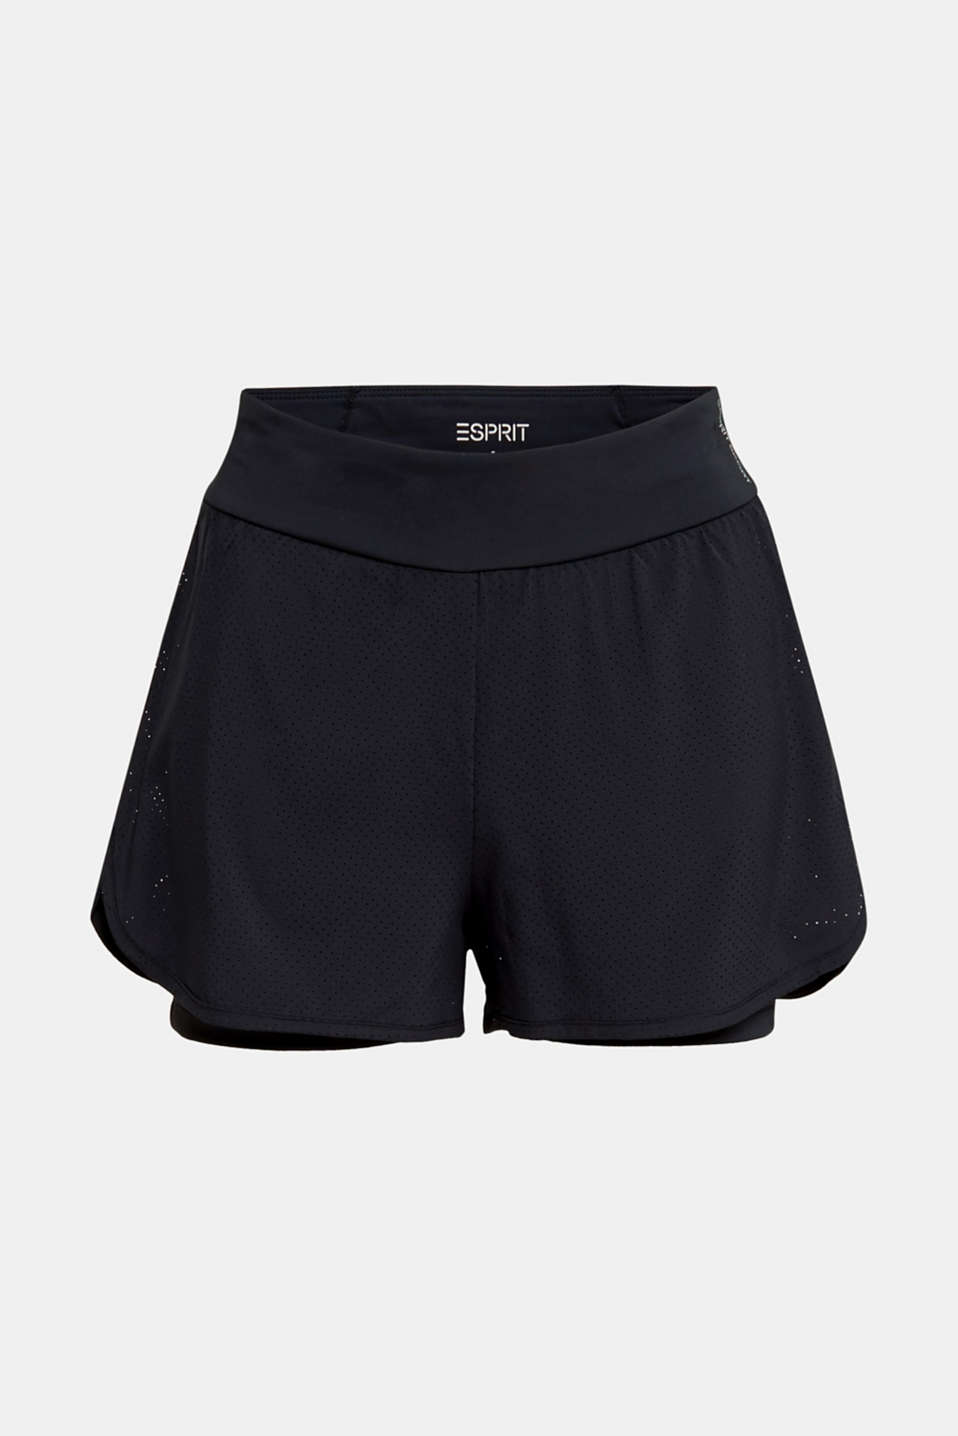 2-in-1: layered shorts made of mesh, edry, BLACK, detail image number 5